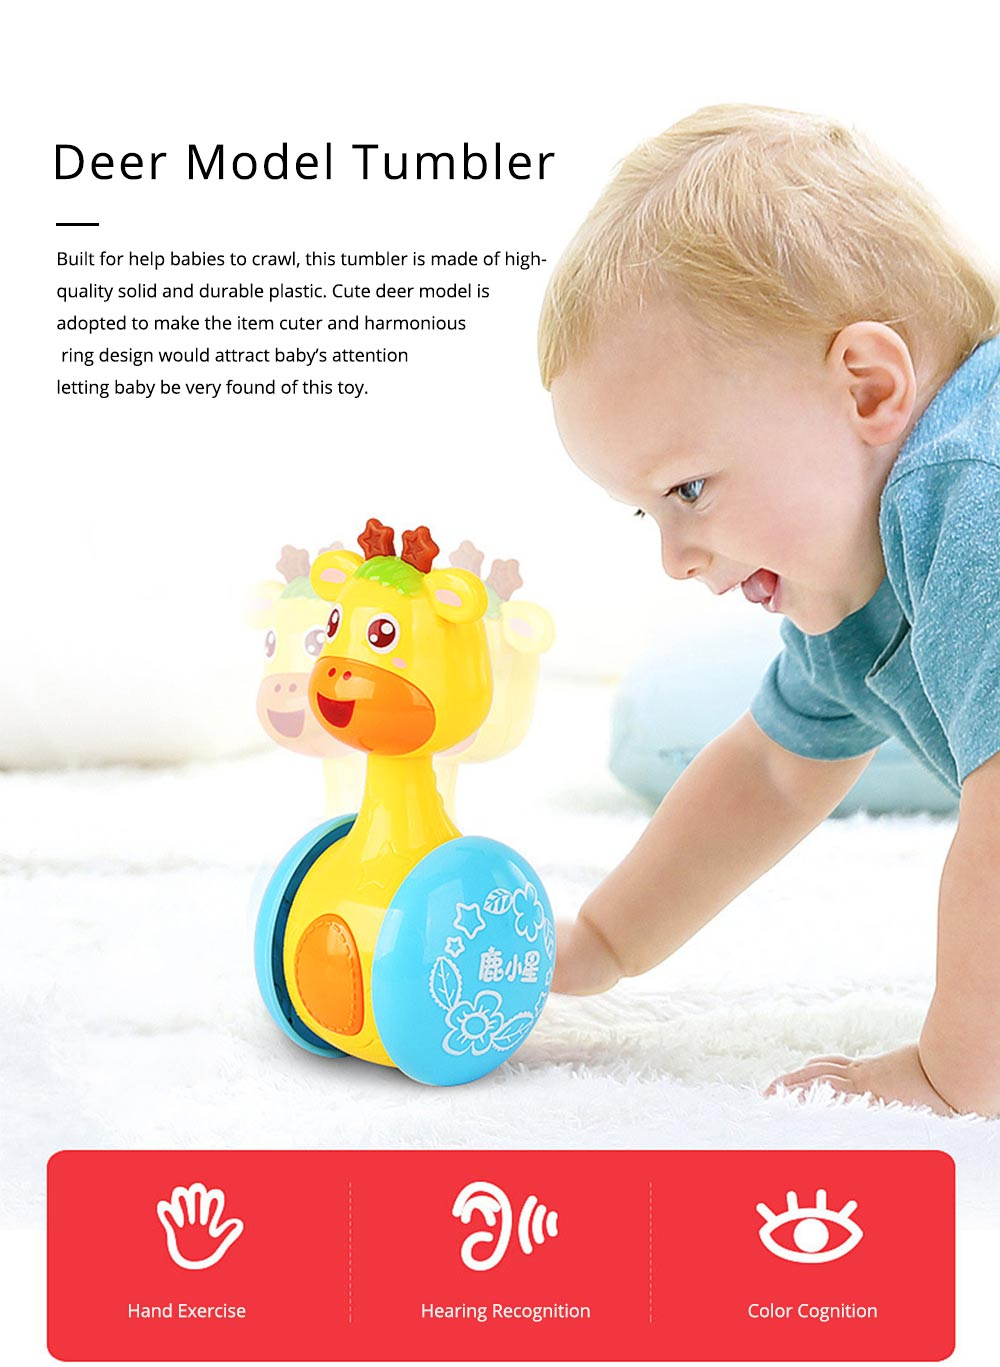 Cute Deer Tumbler Learn Crawling Education Toy, Breaking-proof Swinging Interaction Early Education Toy 0